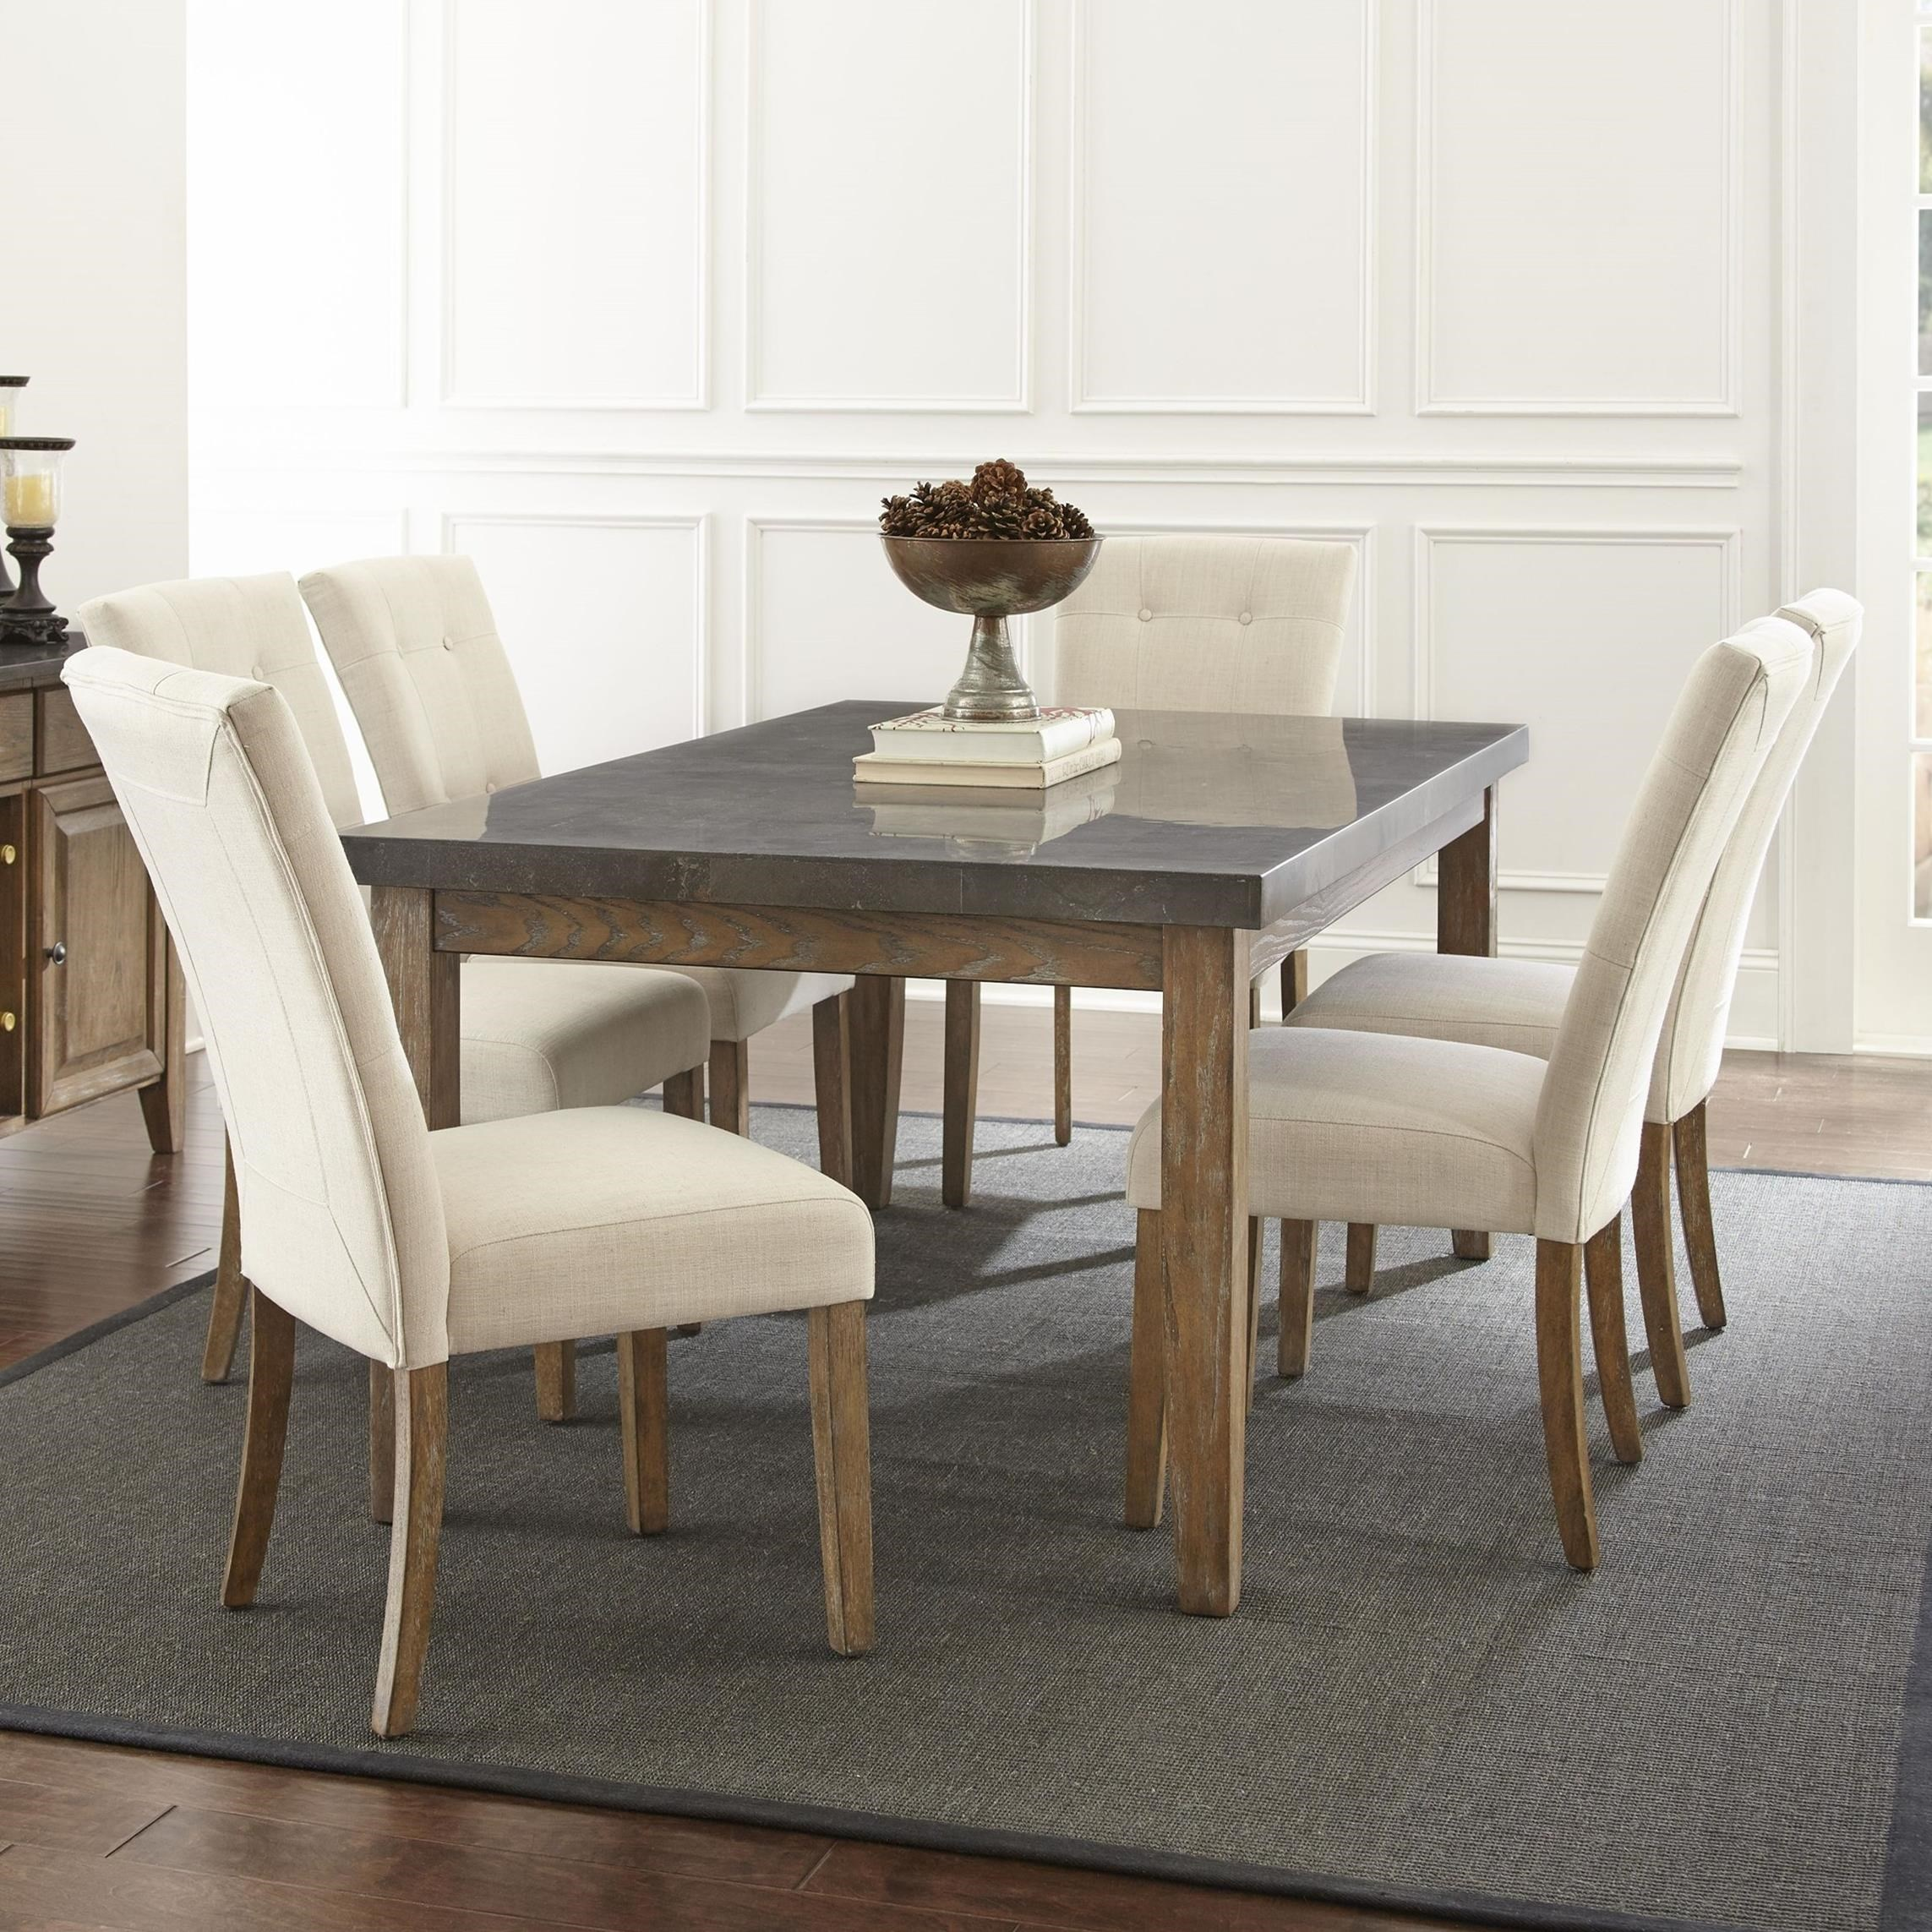 Debby 7 Piece Table and Chair Set by Steve Silver at Northeast Factory Direct